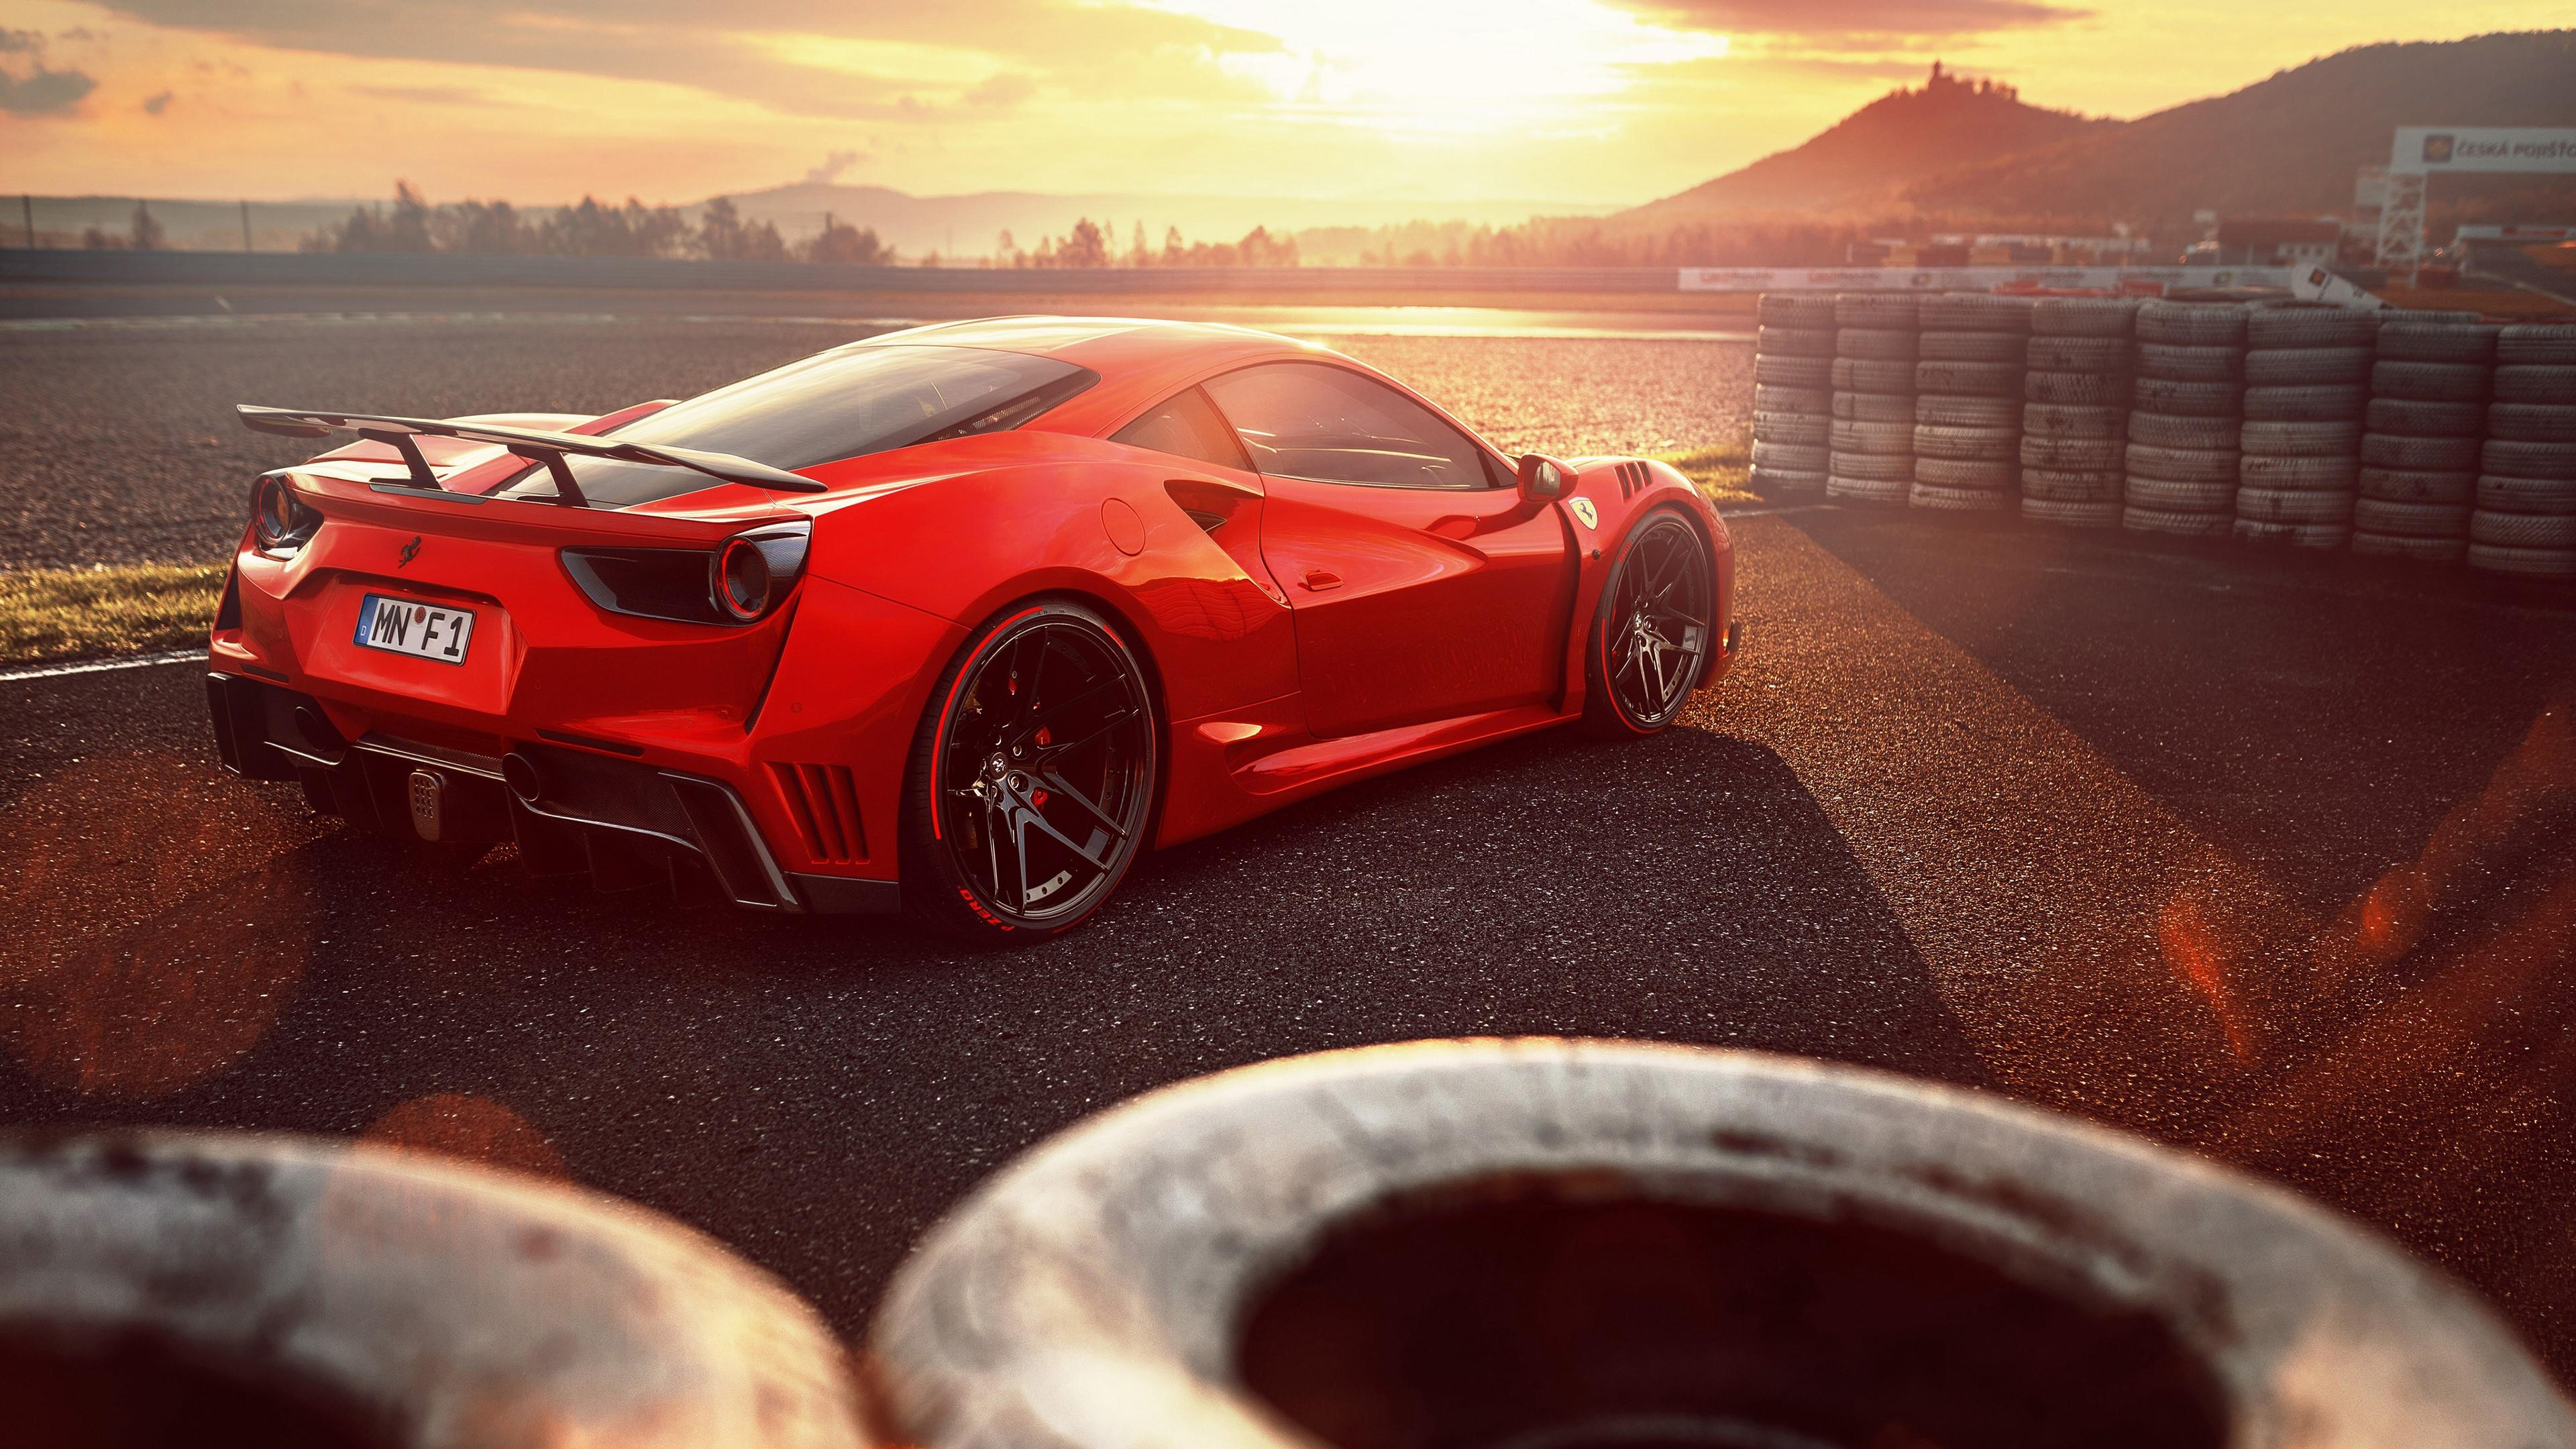 Ferrari 488 Wallpapers Top Free Ferrari 488 Backgrounds